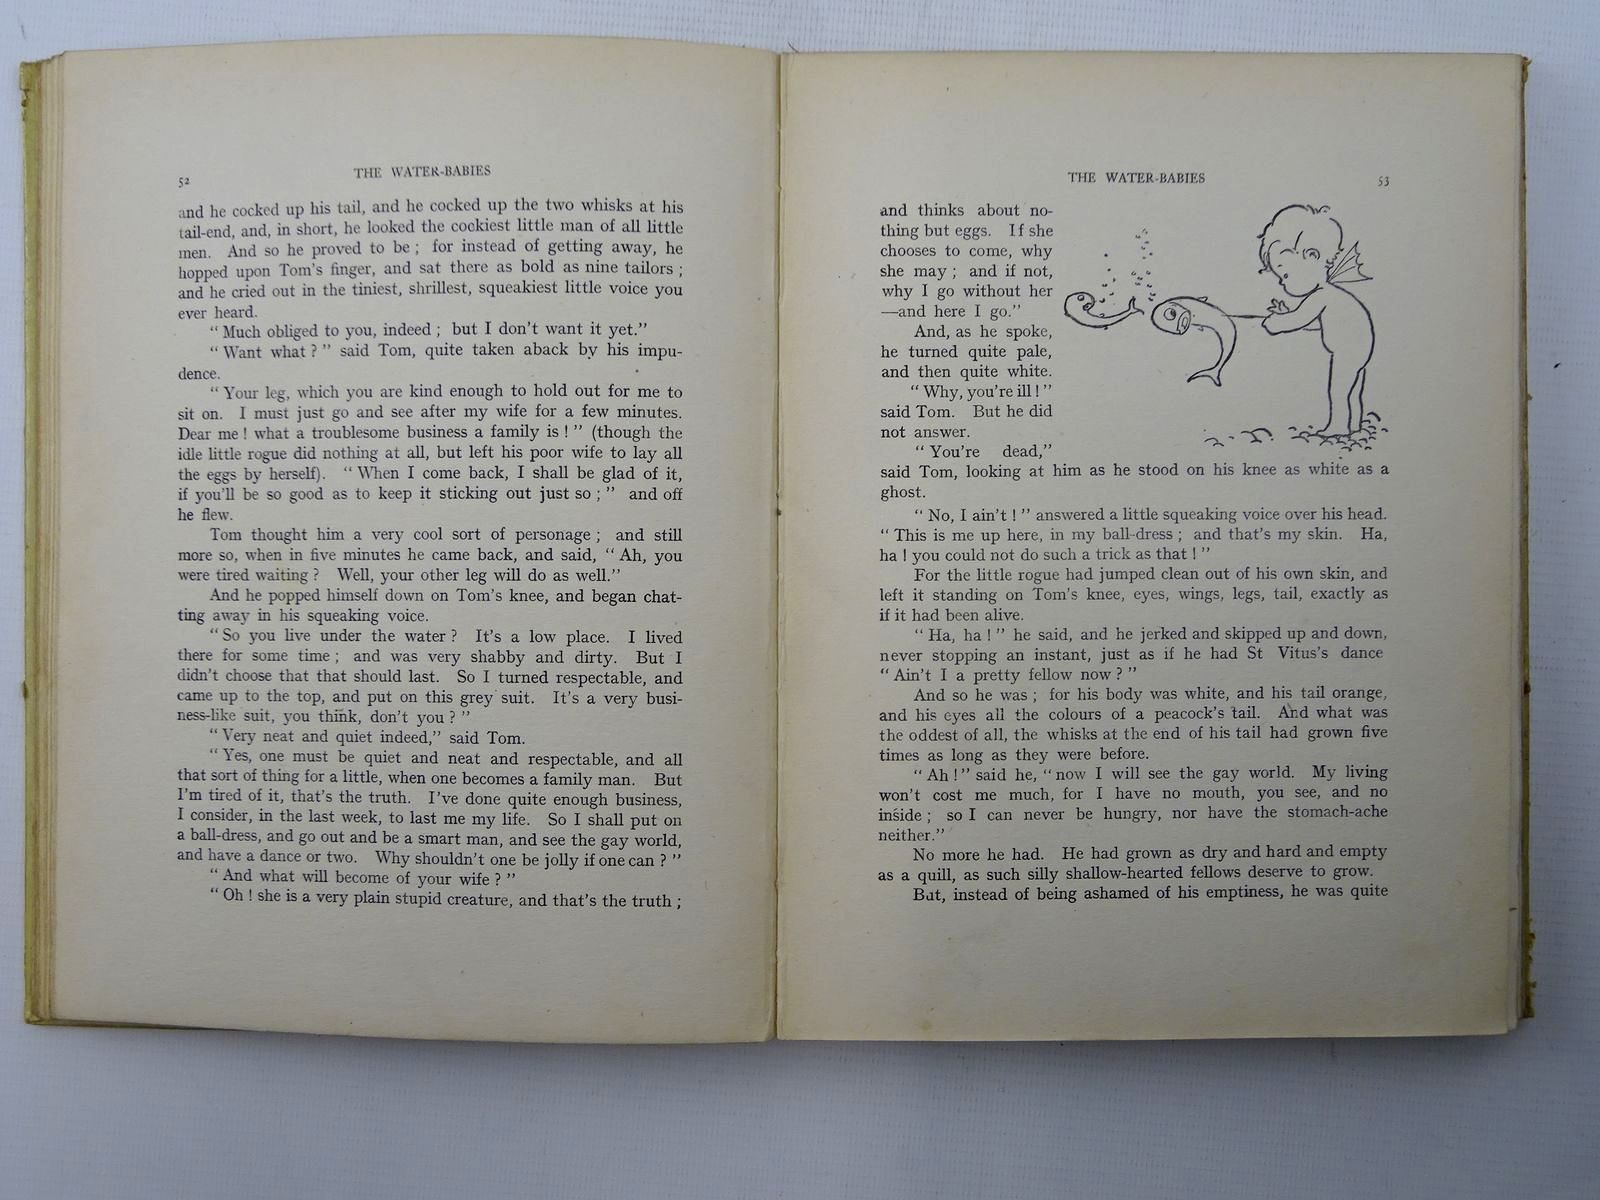 Photo of THE WATER BABIES written by Kingsley, Charles illustrated by Attwell, Mabel Lucie published by Raphael Tuck & Sons Ltd. (STOCK CODE: 2125663)  for sale by Stella & Rose's Books